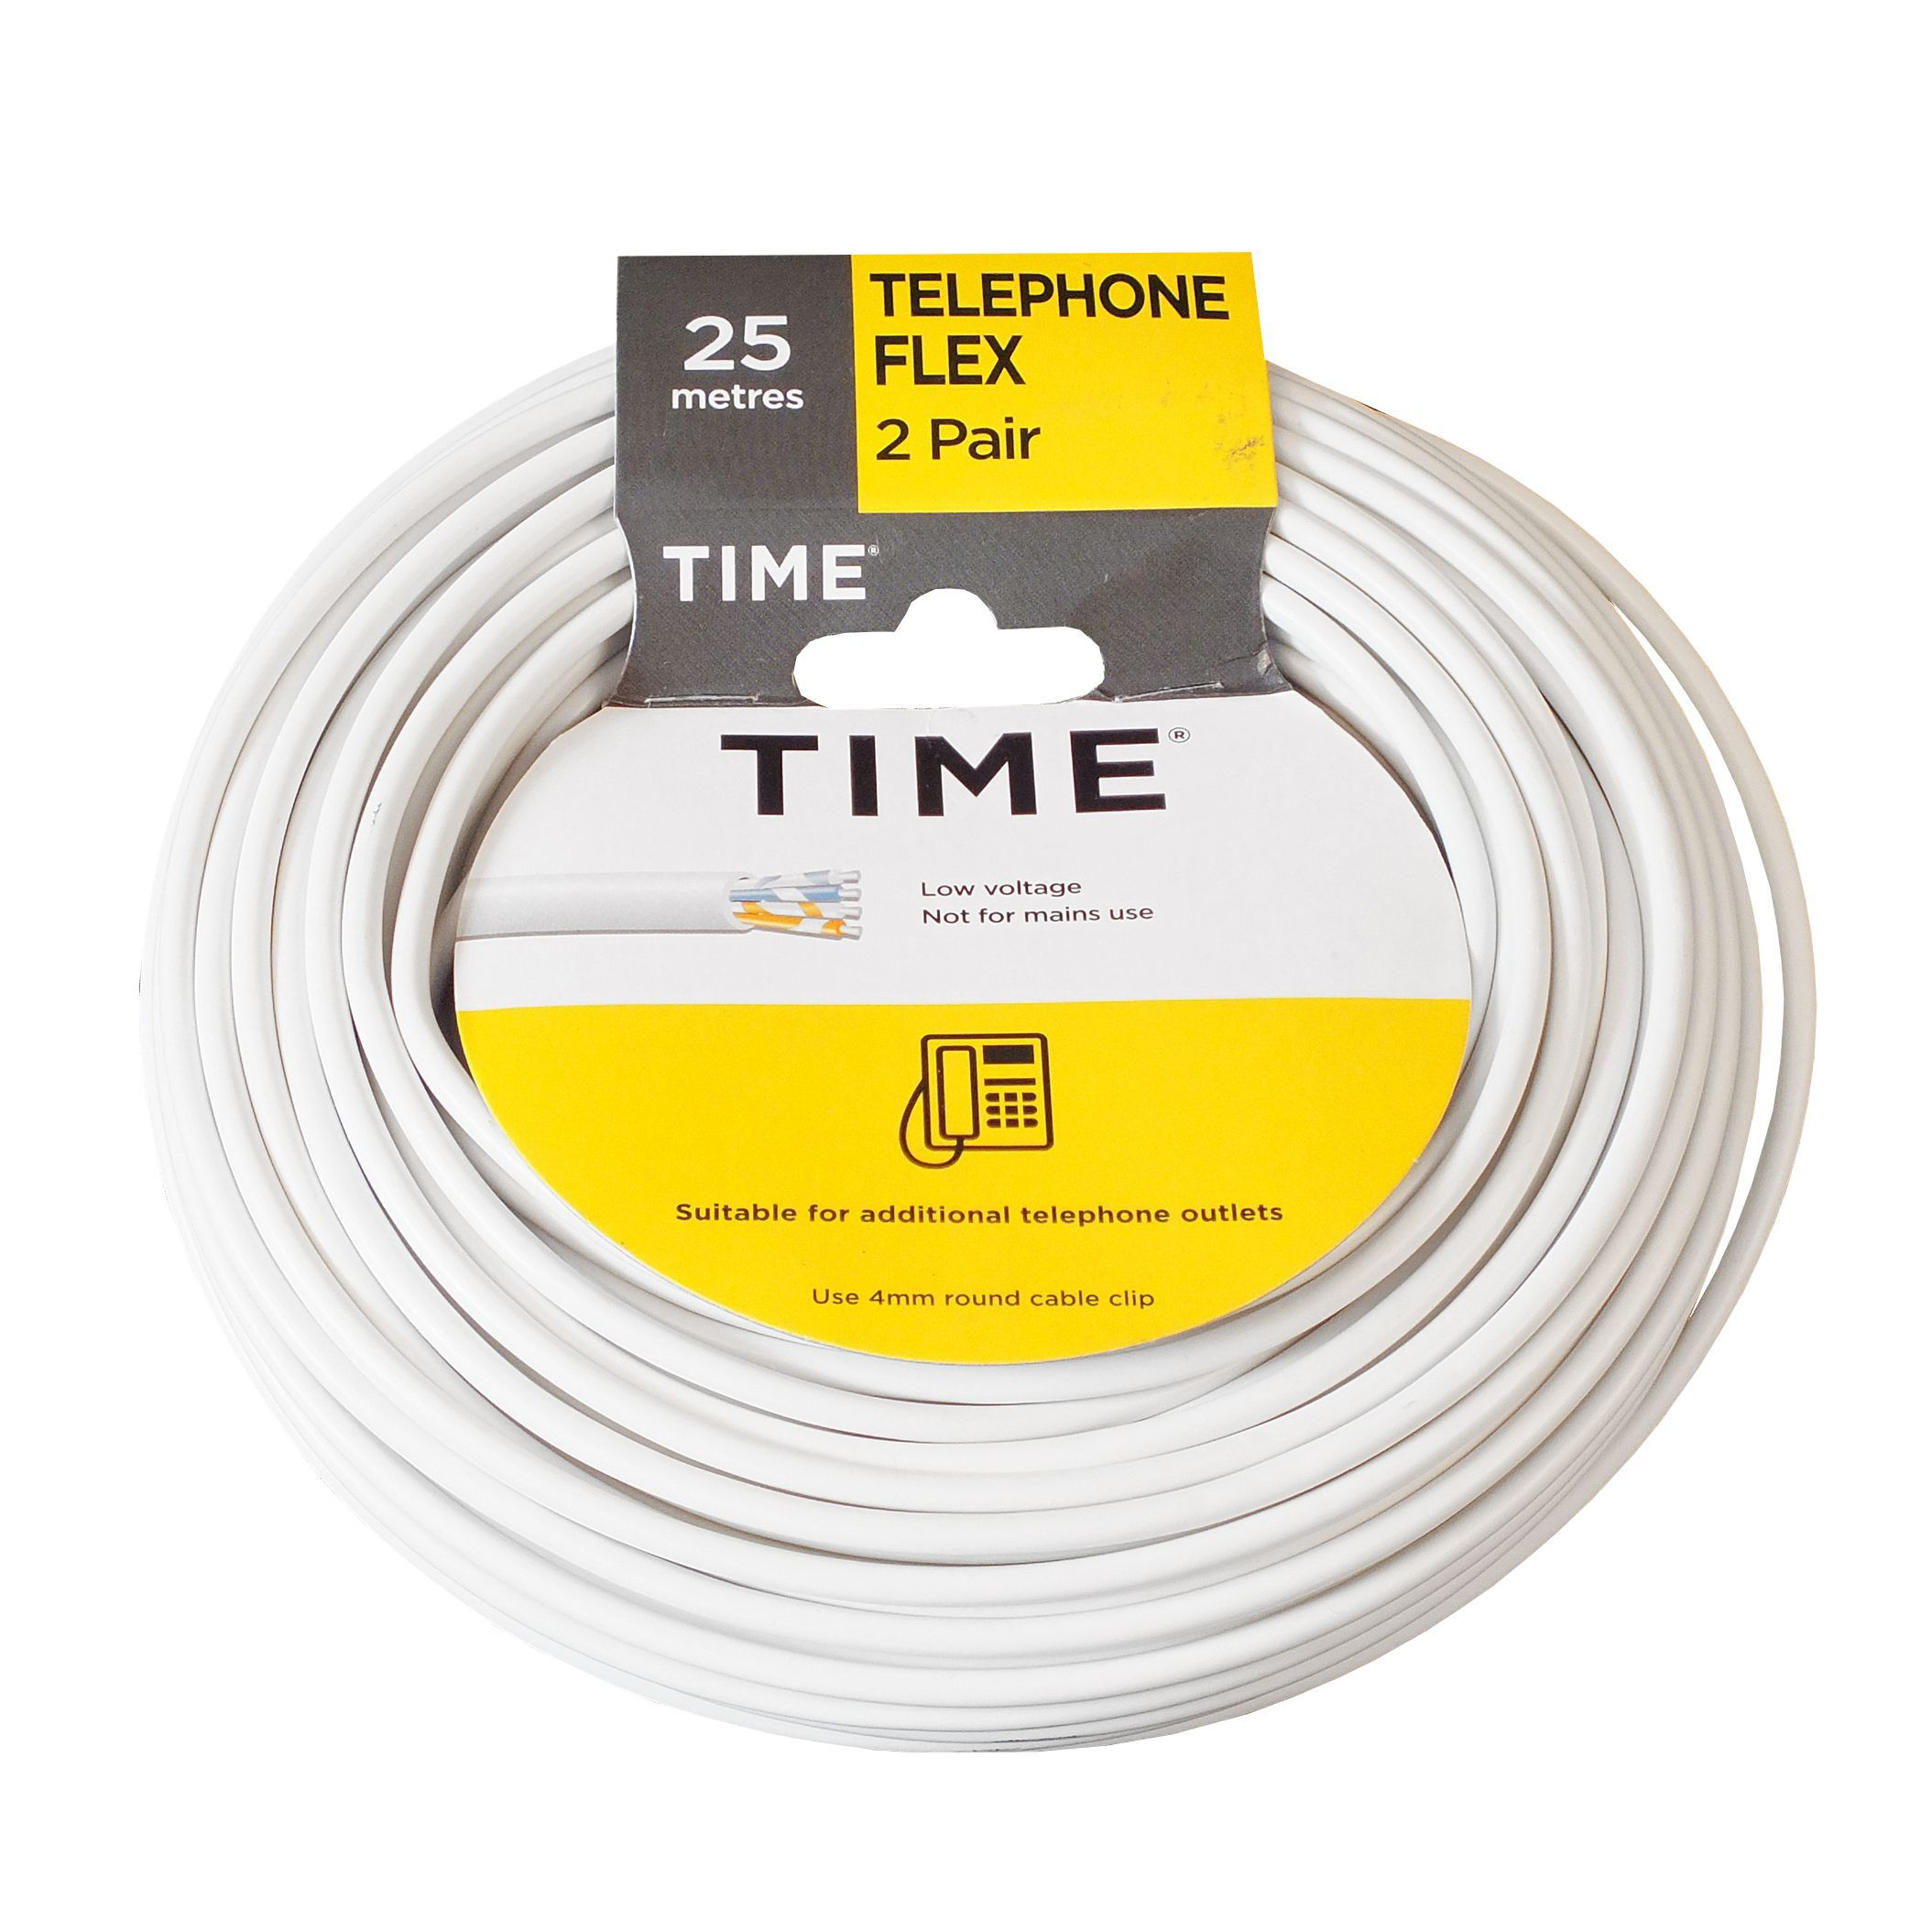 Time 2 Pair Telephone Flexible Cable 0.5mm² White 25m | Departments ...